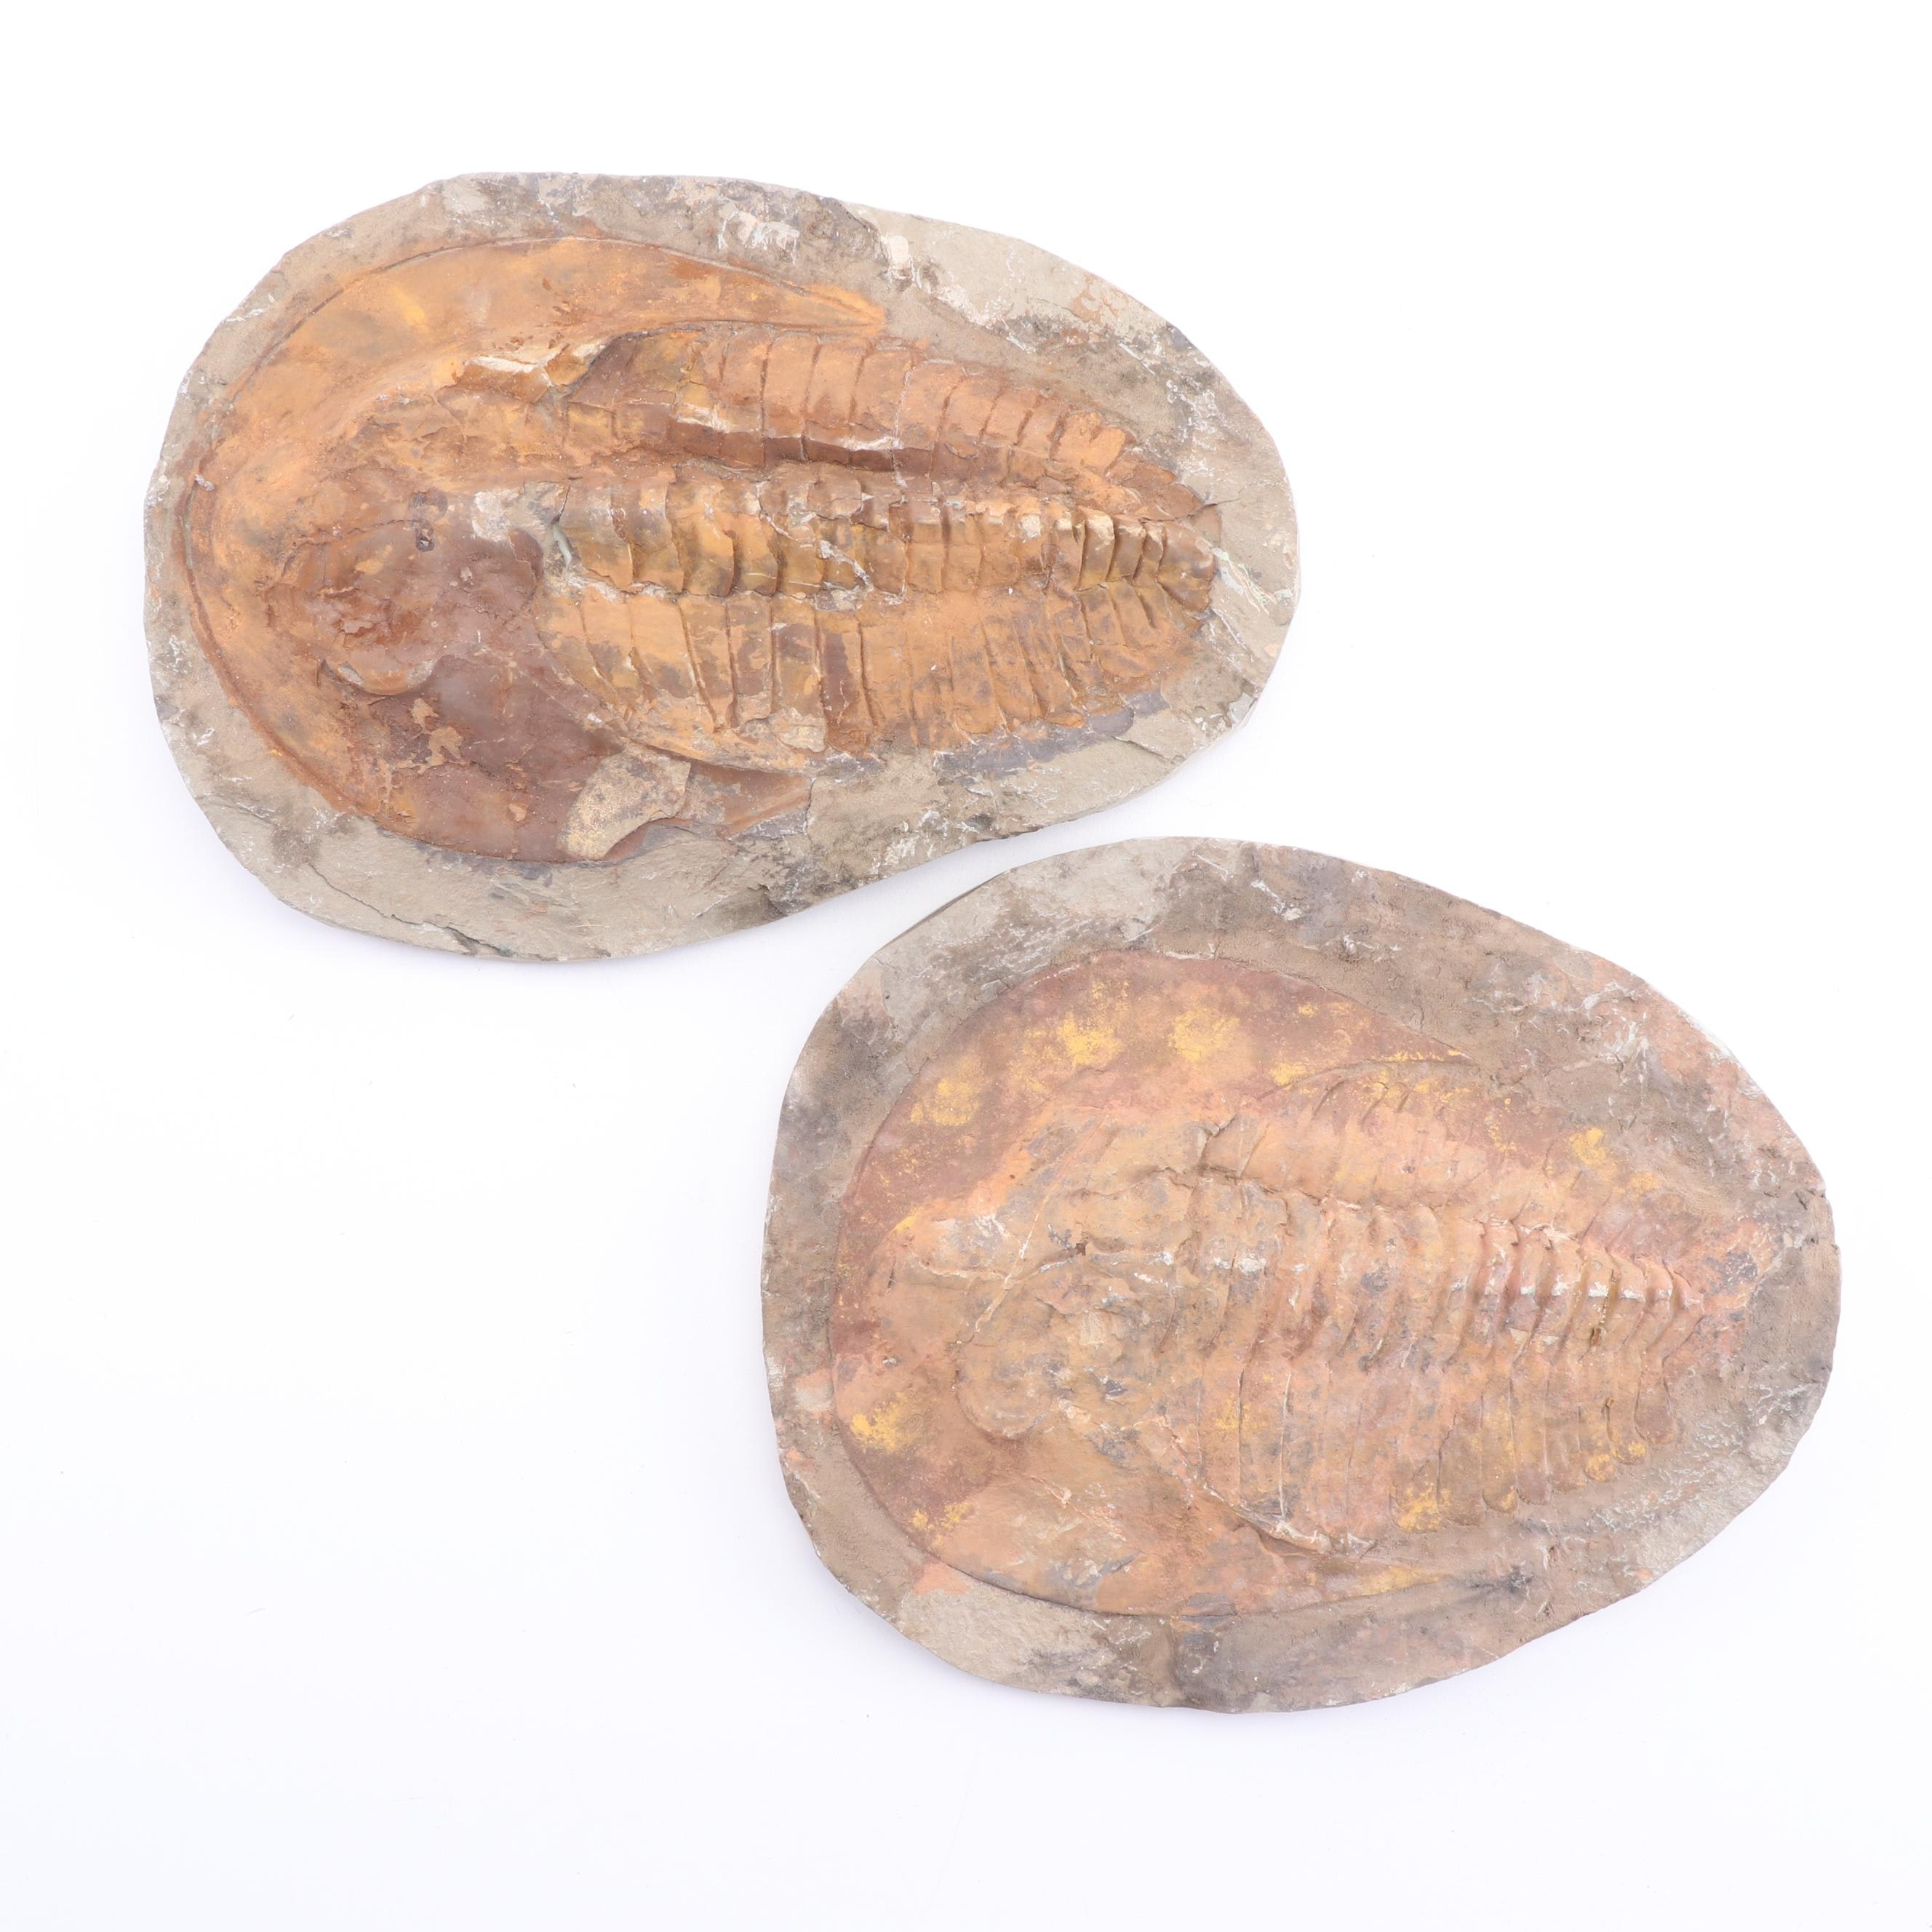 Trilobite Fossil Specimens